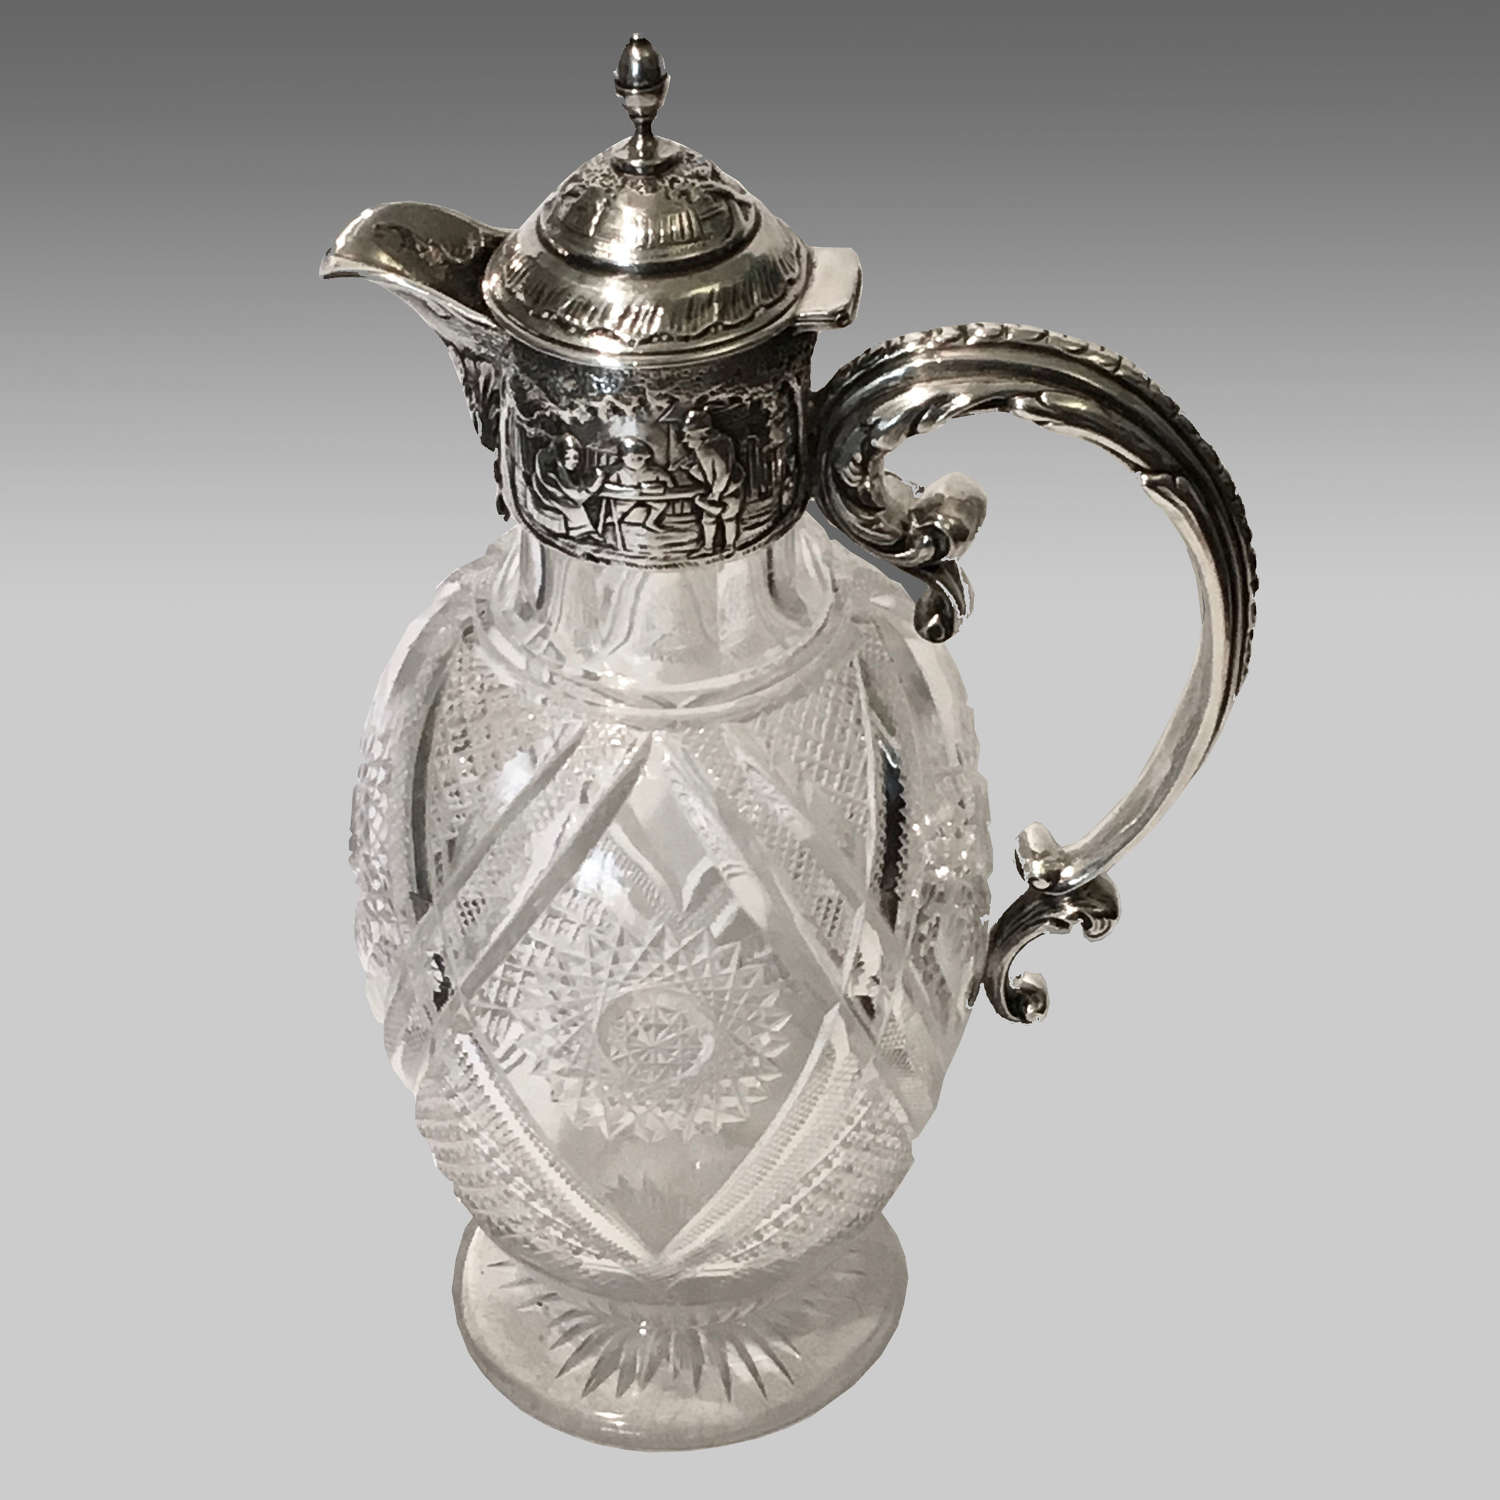 19th century silver and cut glass claret jug